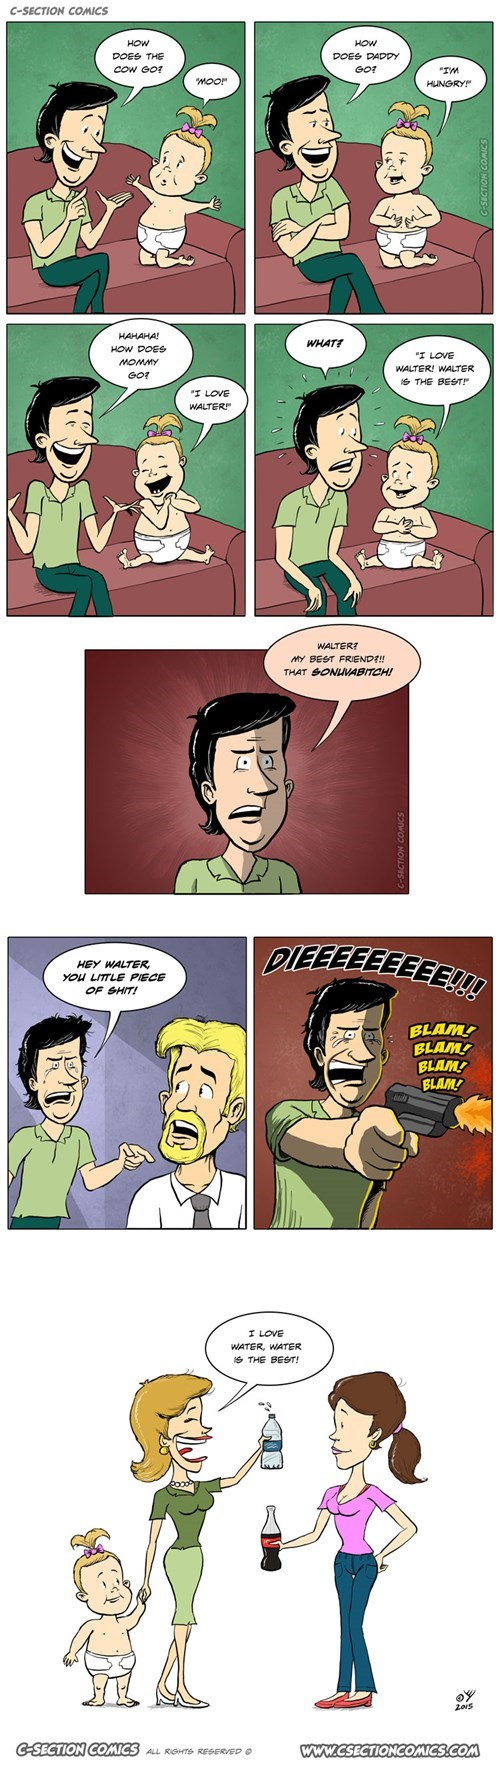 funny-web-comics-this-is-why-you-should-never-trust-a-baby